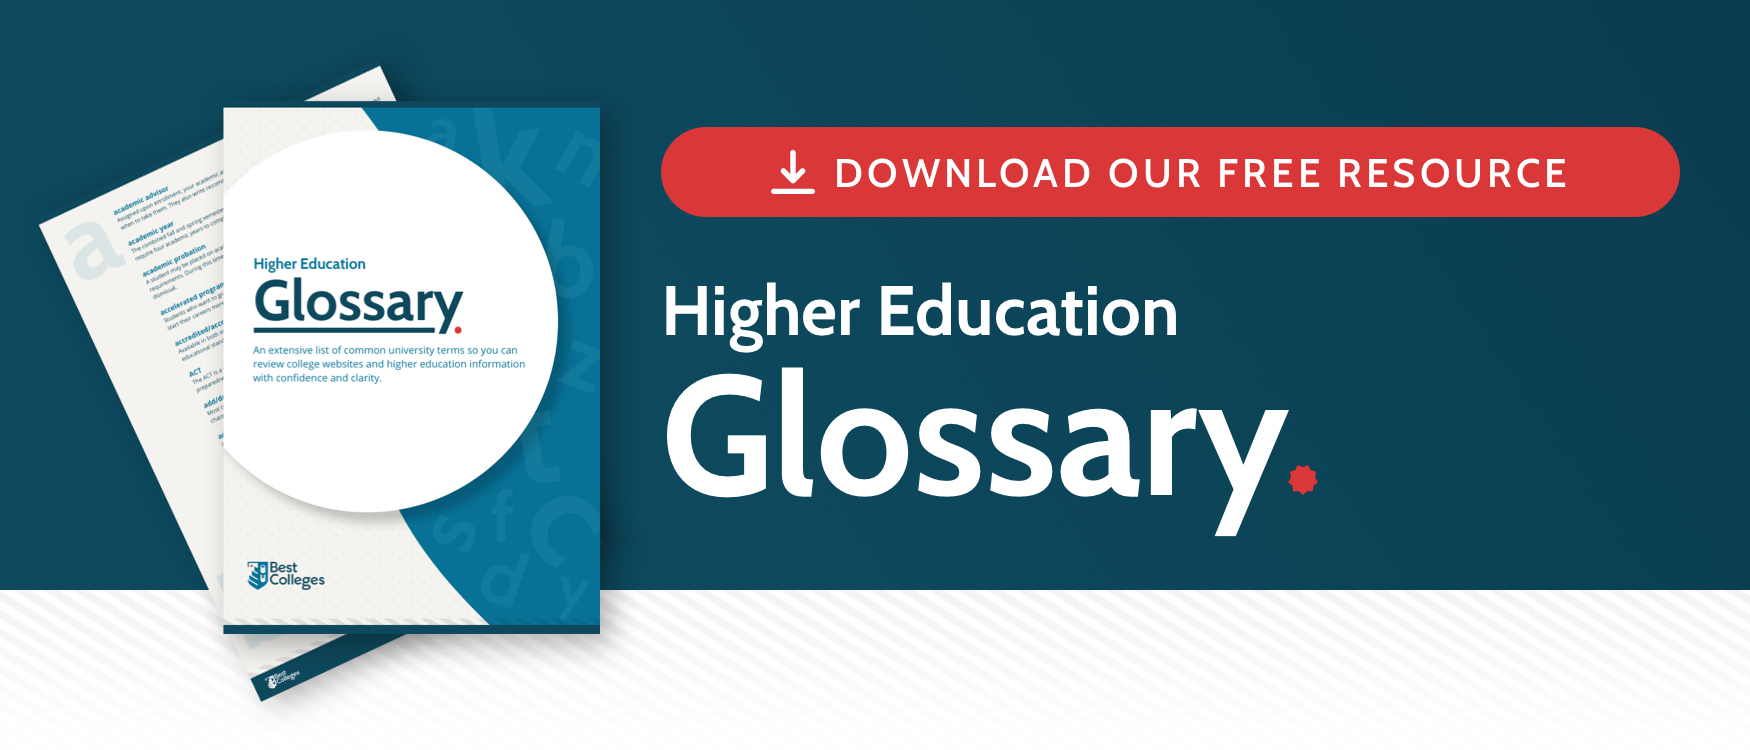 Download the BestColleges.com Higher Education Glossary